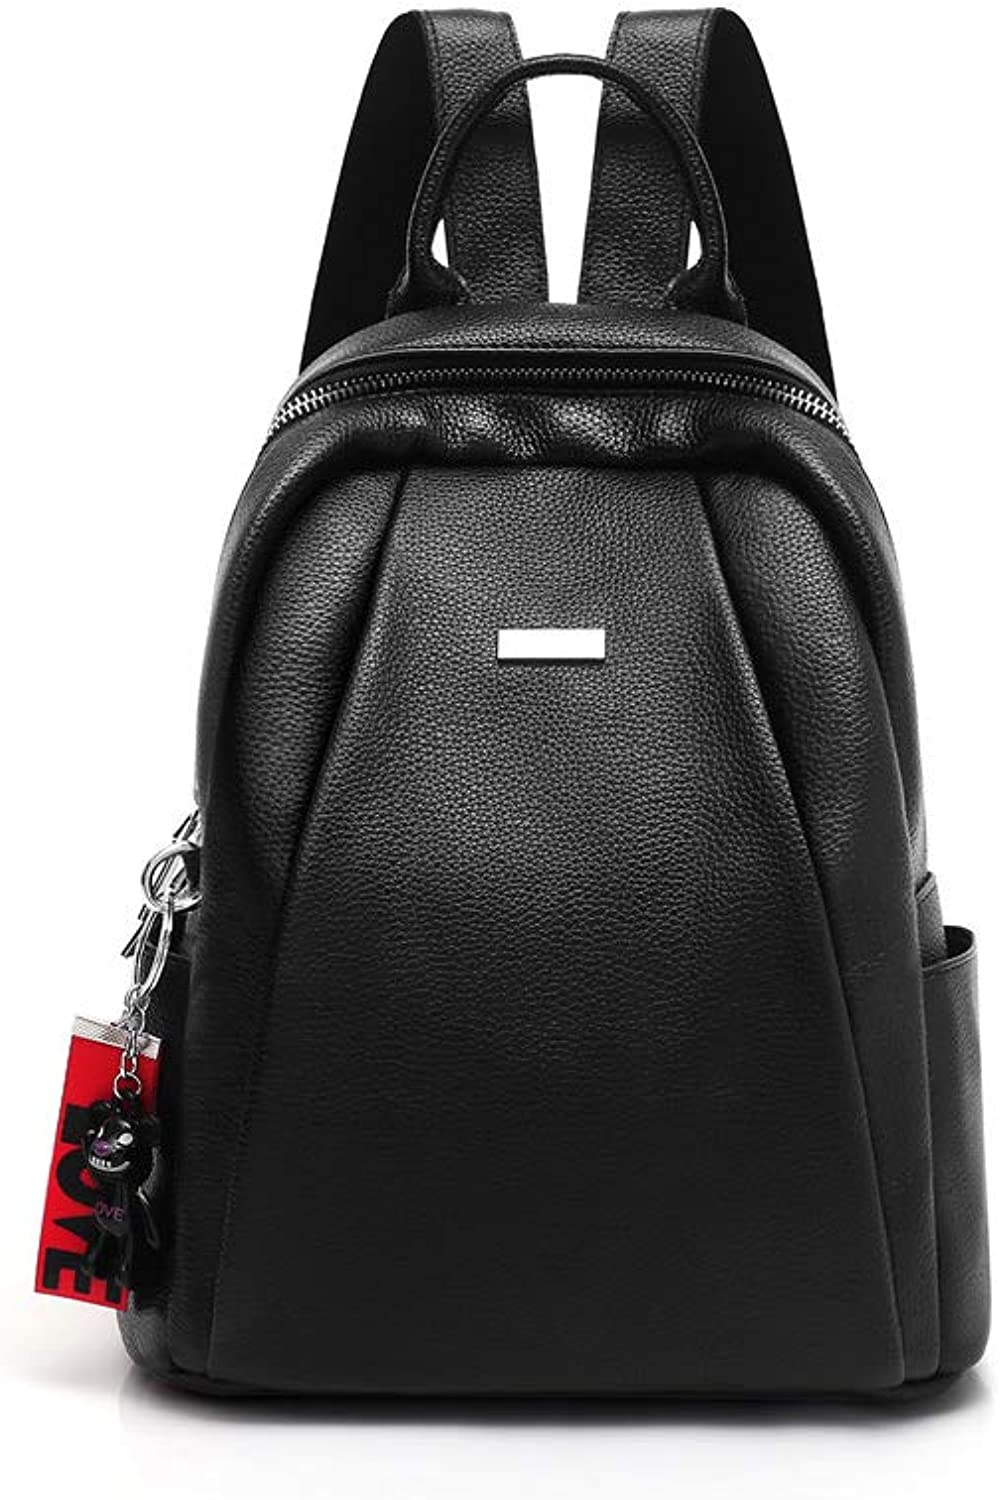 ZHICHUANG Girls Multifunctional Backpack for Daily Travel Tourism School Work Fashion Leisure. Black red, PU Leather, Simple and Large Capacity for Women & Men